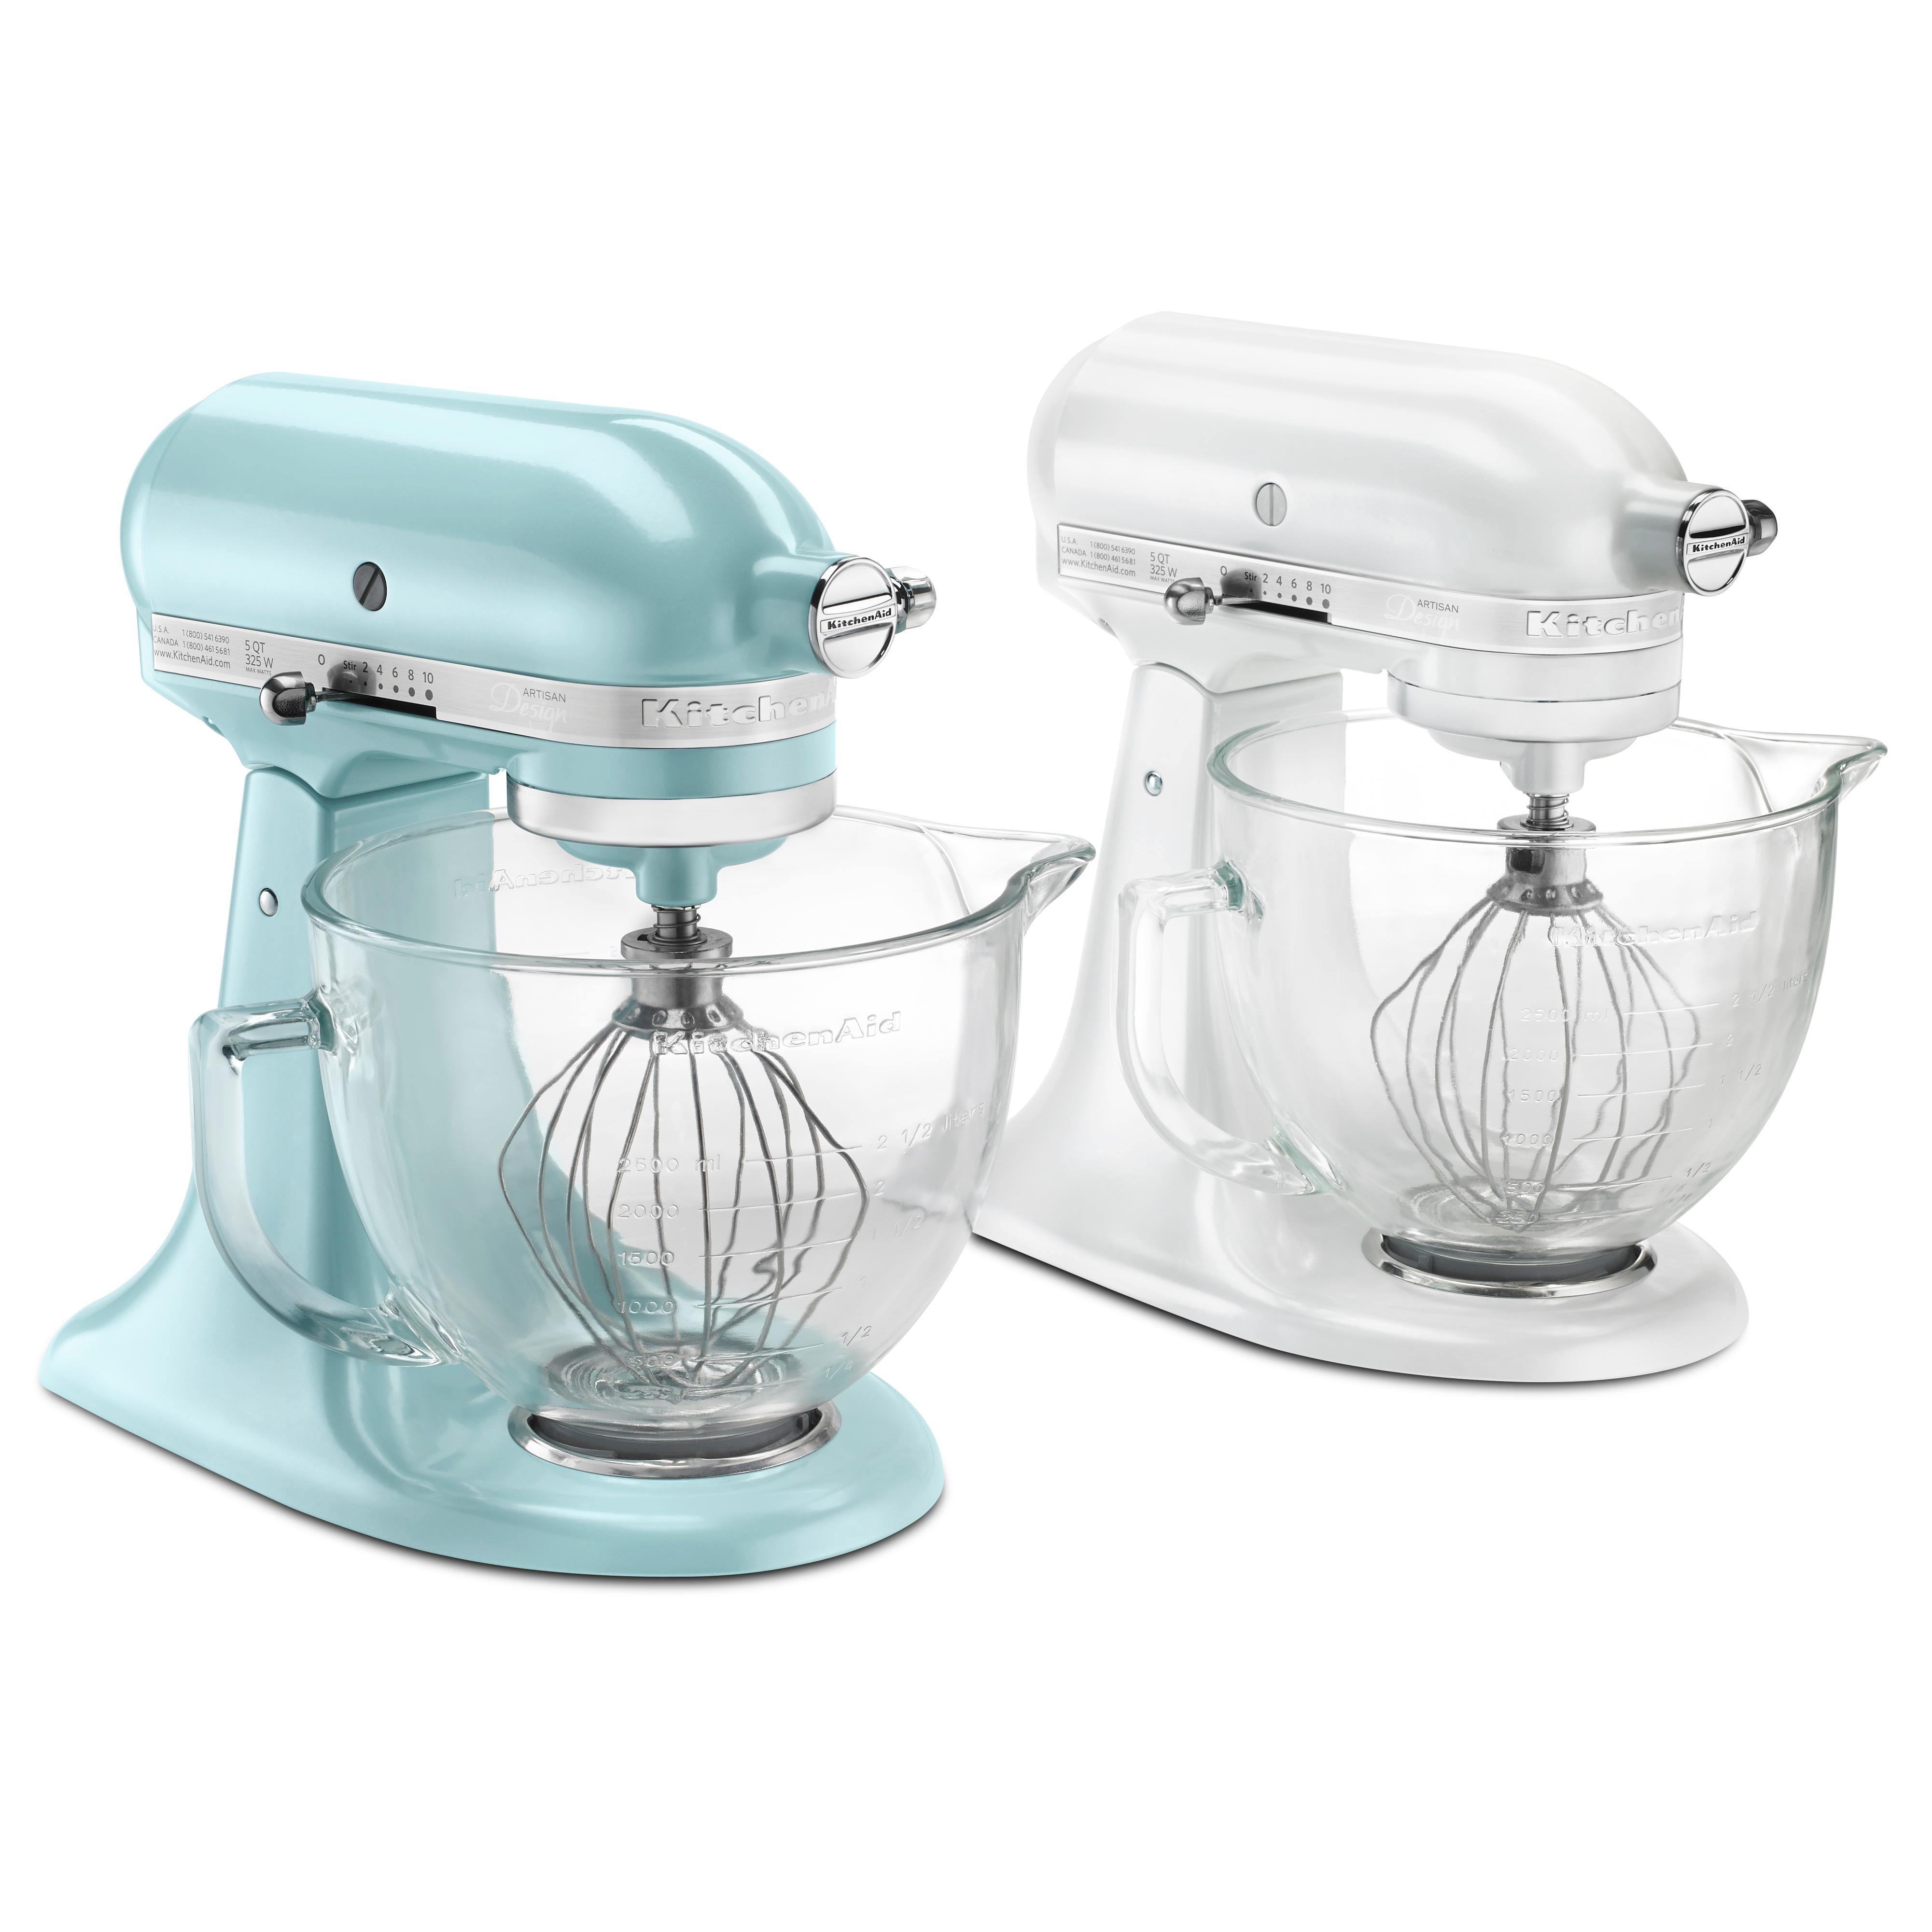 Kitchenaid ksm155gbca 5 qt artisan design for Kitchenaid f series